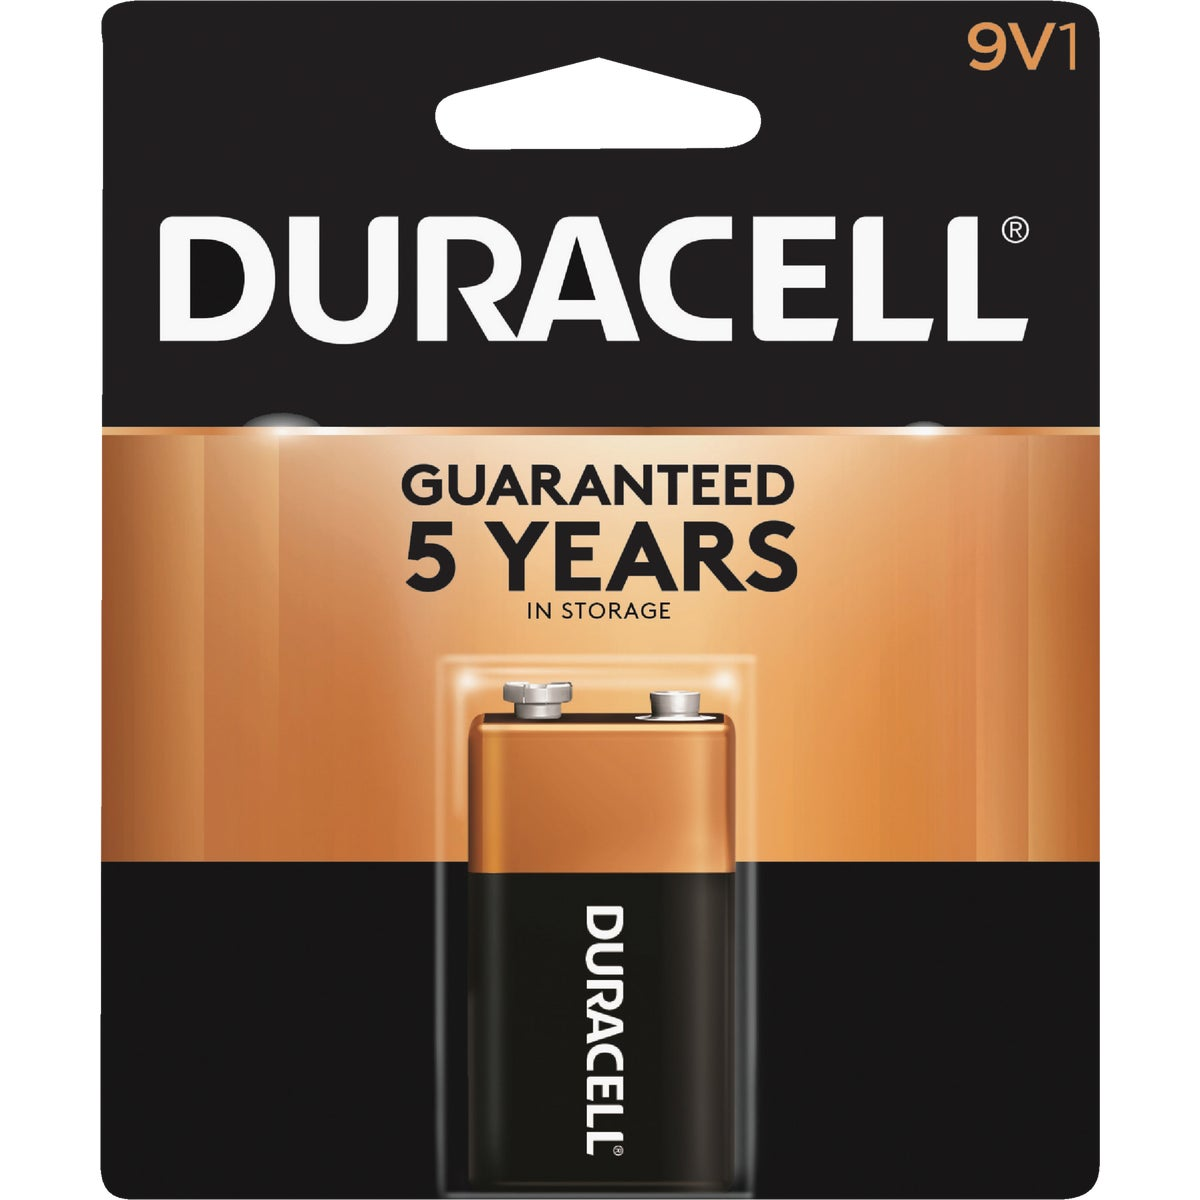 9V ALKALINE BATTERY - 09361 by P & G  Duracell